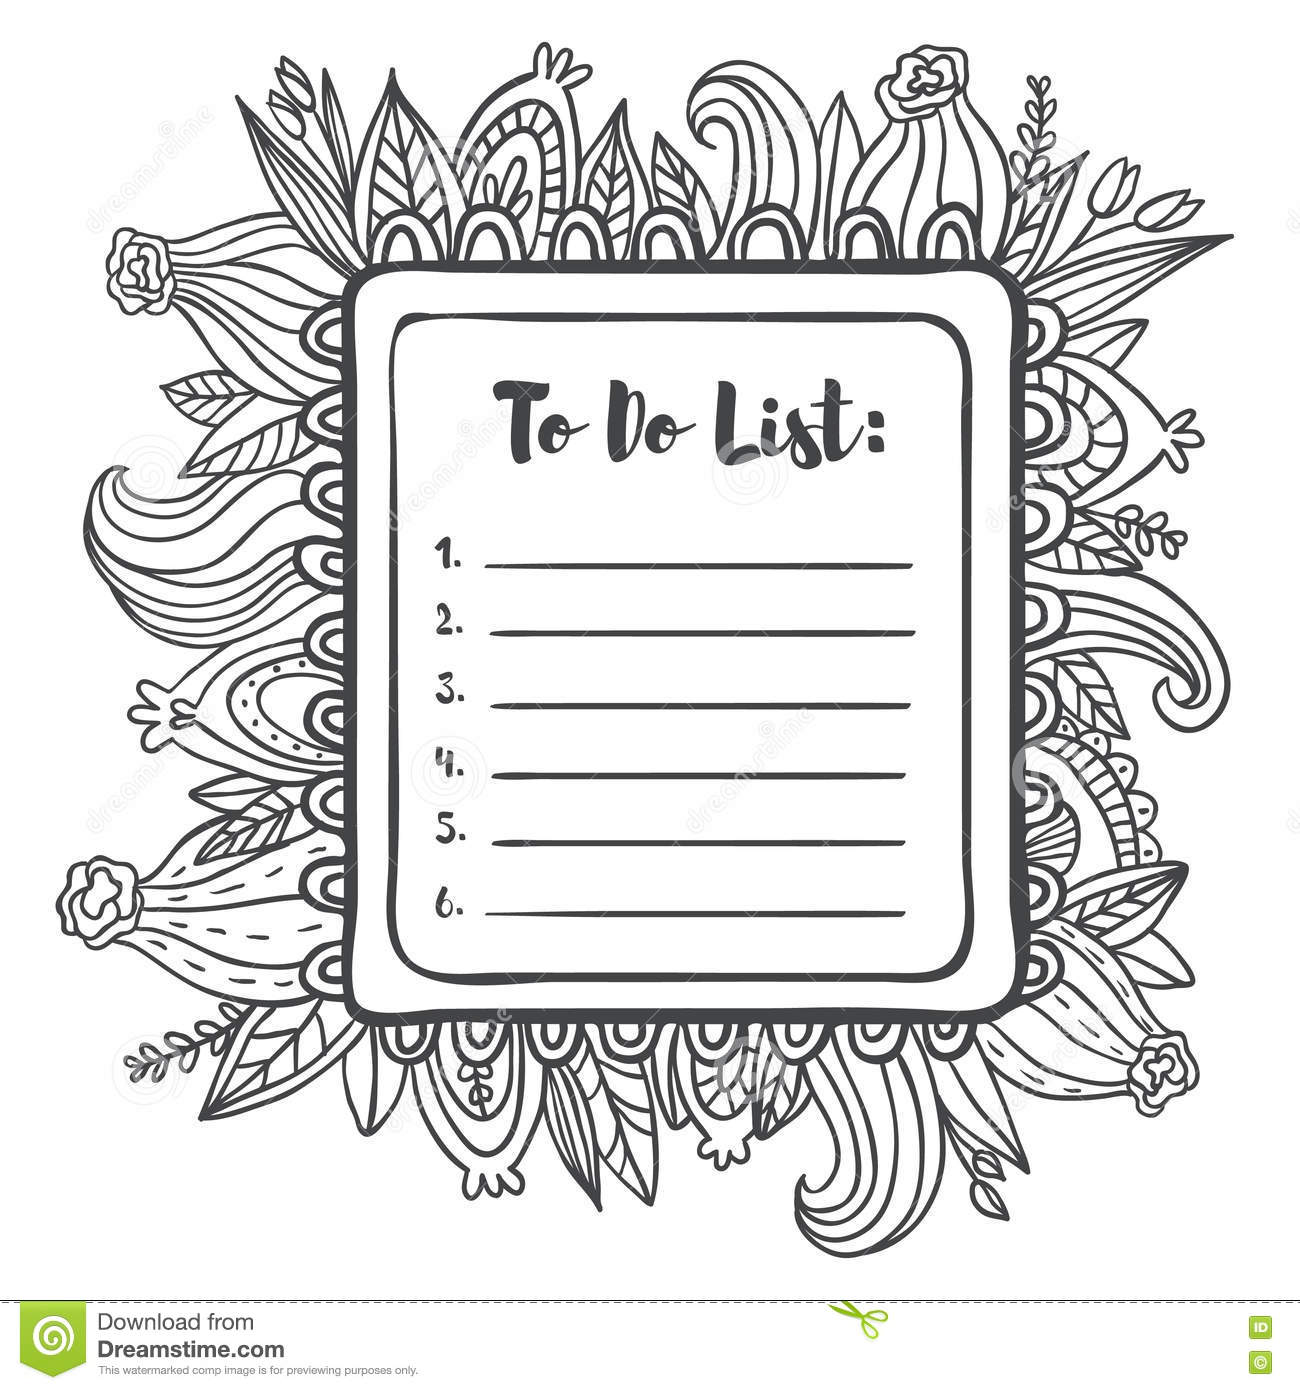 printable to do list page. stock illustration. illustration of